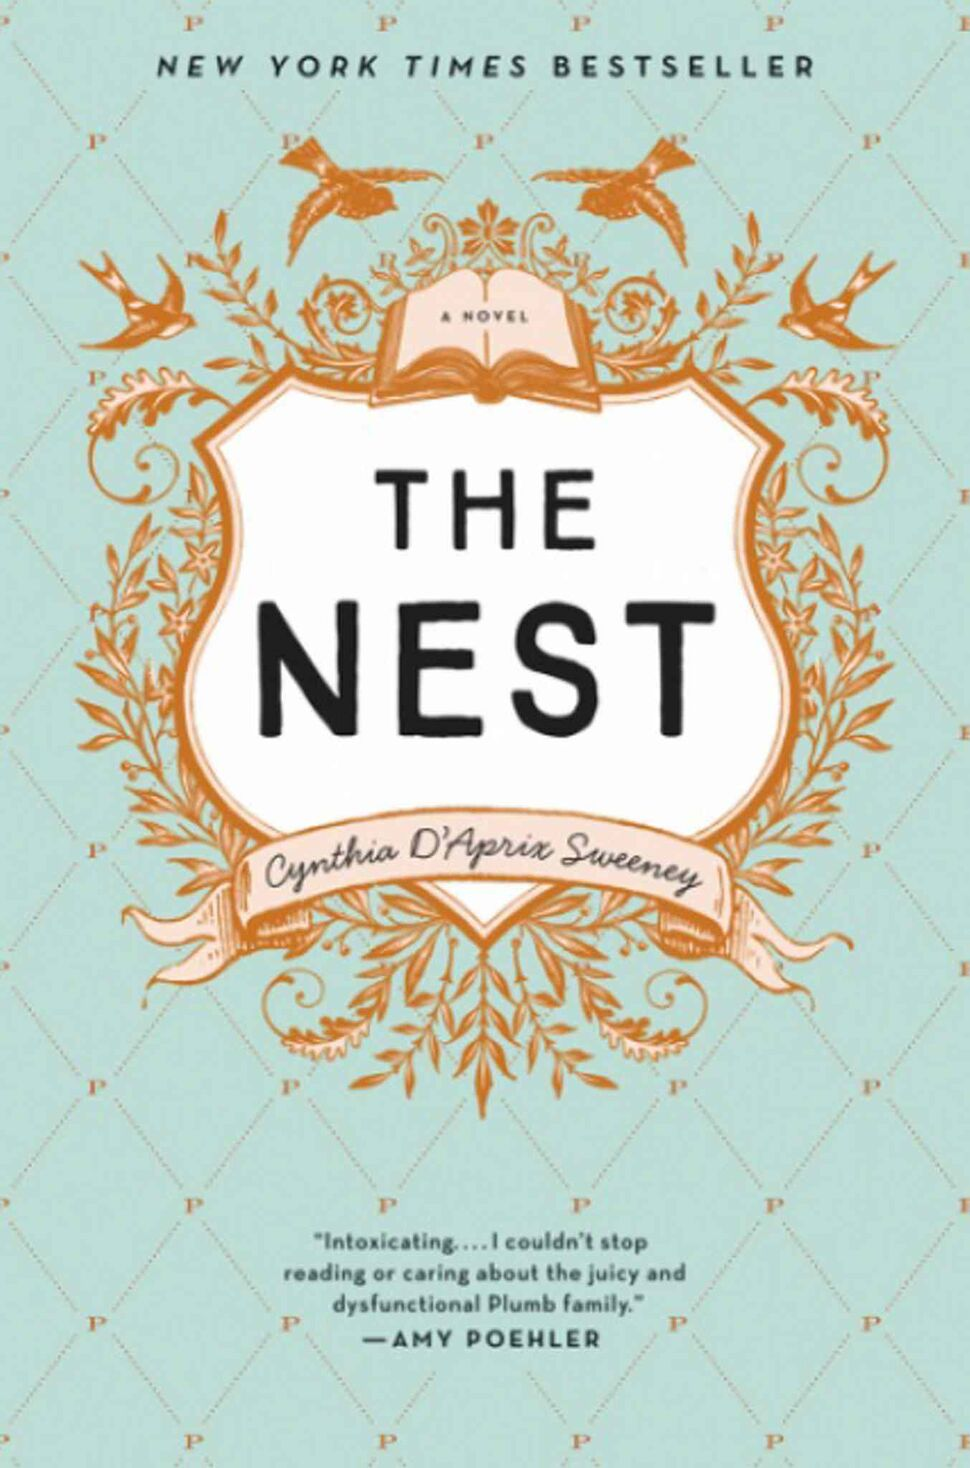 <h3>The Nest</h3> <br/> By Cynthia D'Aprix Sweeney <br/> <strong>The quixotic characters of The Nest will surely leave a lasting impression upon readers of contemporary literature. At times charming, at times cringe-worthy, their attempts to pick up the pieces of their broken dreams will captivate the mind, body and soul of the reader. Like most delightfully quirky but utterly dysfunctional families, the Plumbs rouse the best and the worst in each other.</strong> <br/> — Jennifer Pawluk